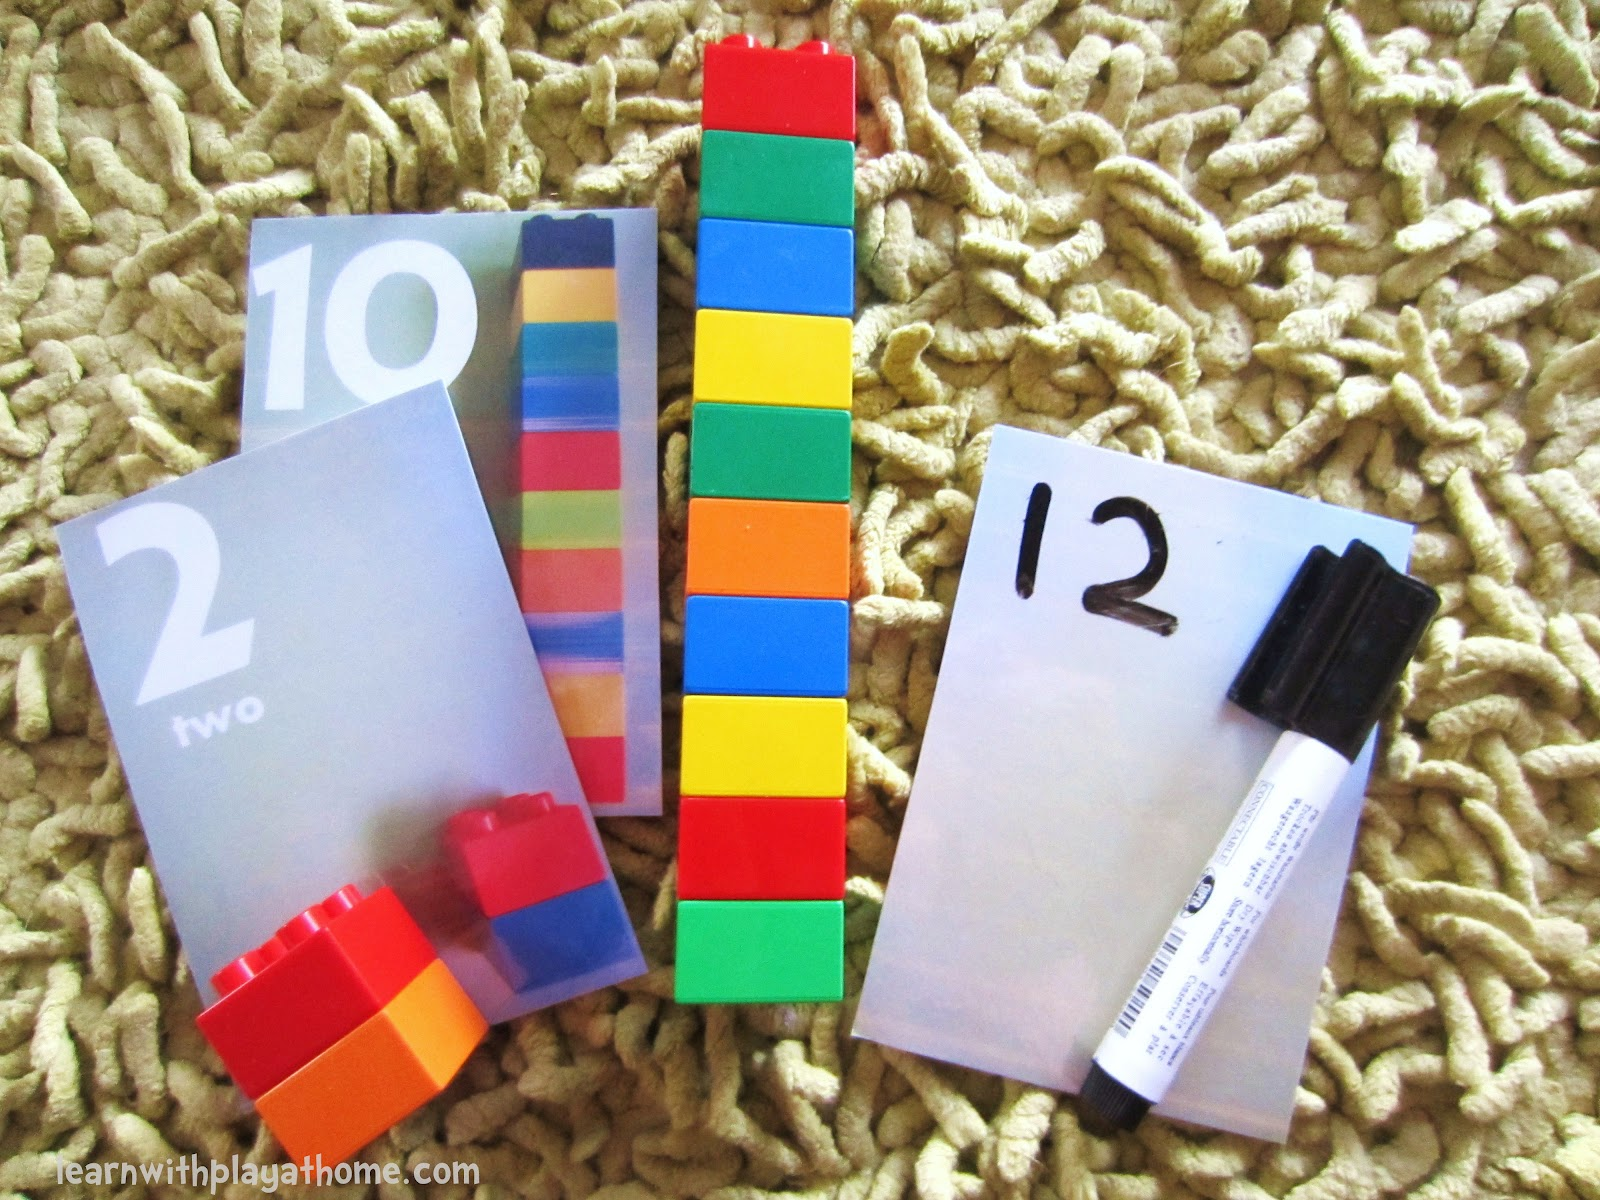 Learn With Play At Home Printable Duplo Number Cards